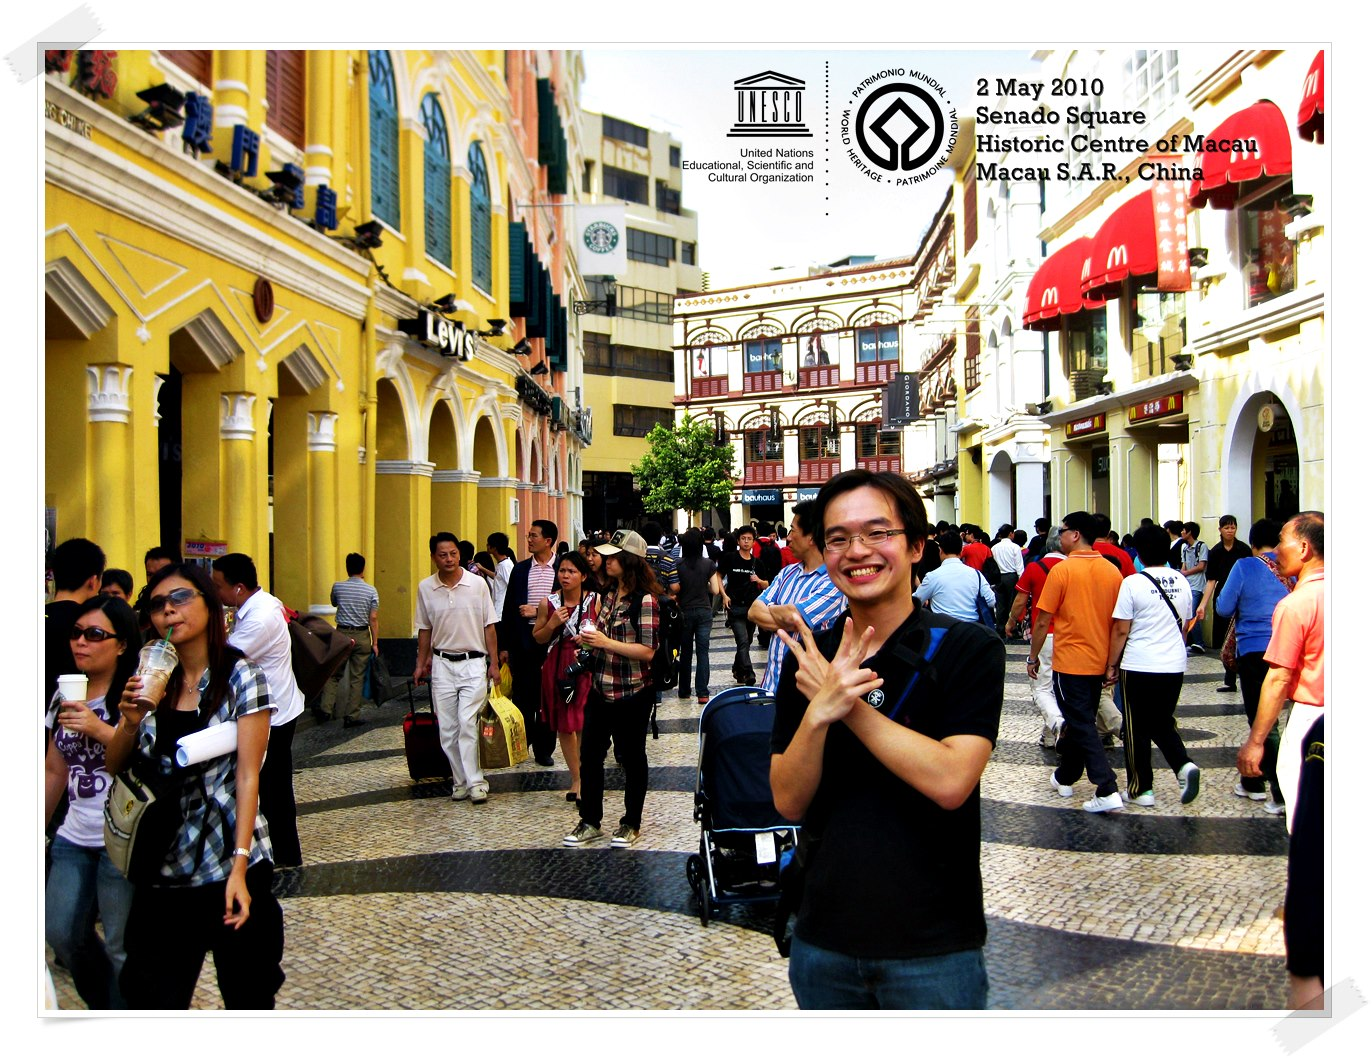 Leal Senado Square, the Heart of Macao Historic Centre of Macao - China Thomas shaw